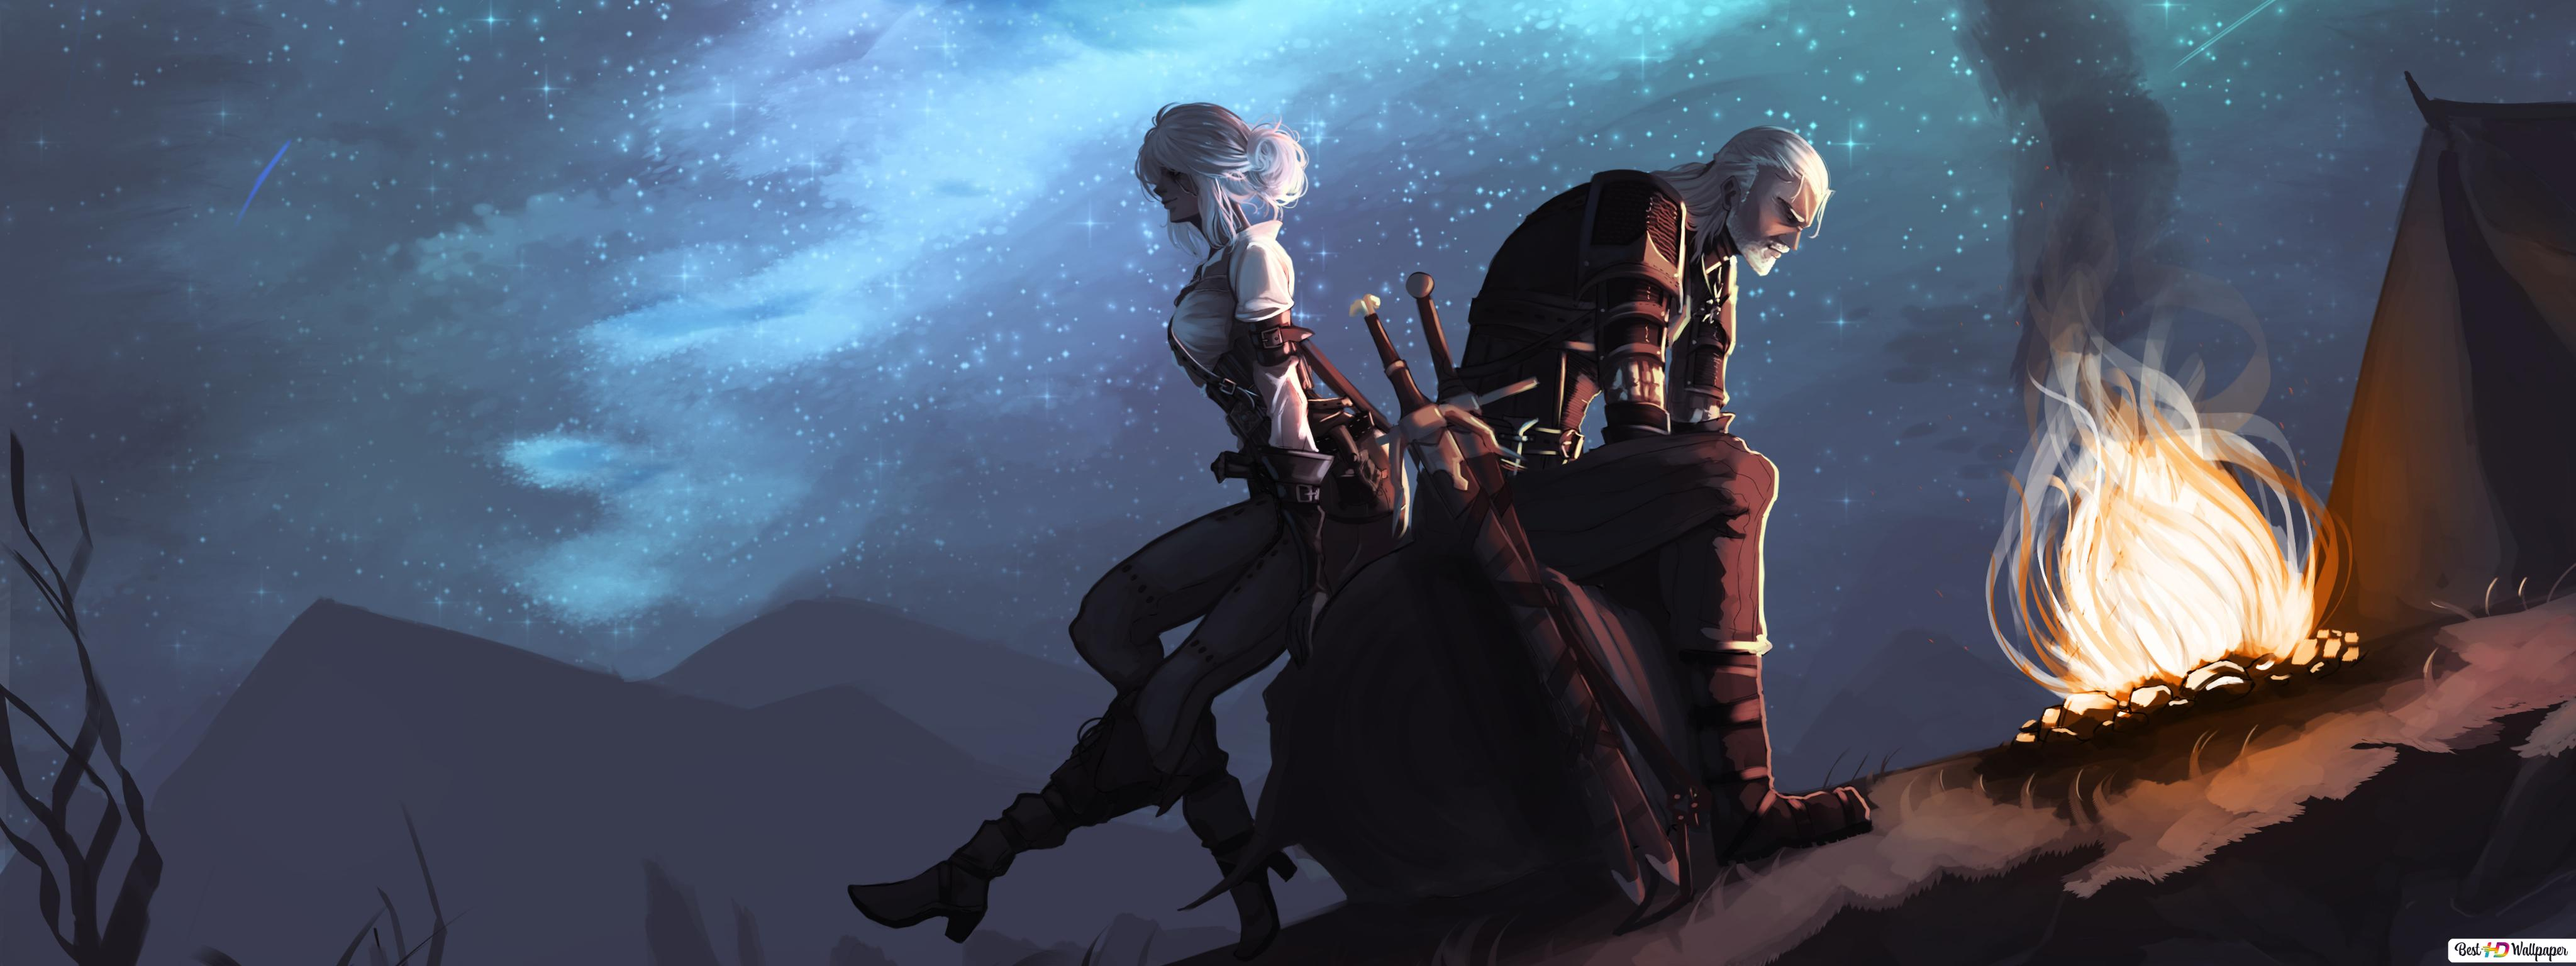 The Witcher 3 Wild Hunt Geralt Ciri Hd Wallpaper Download